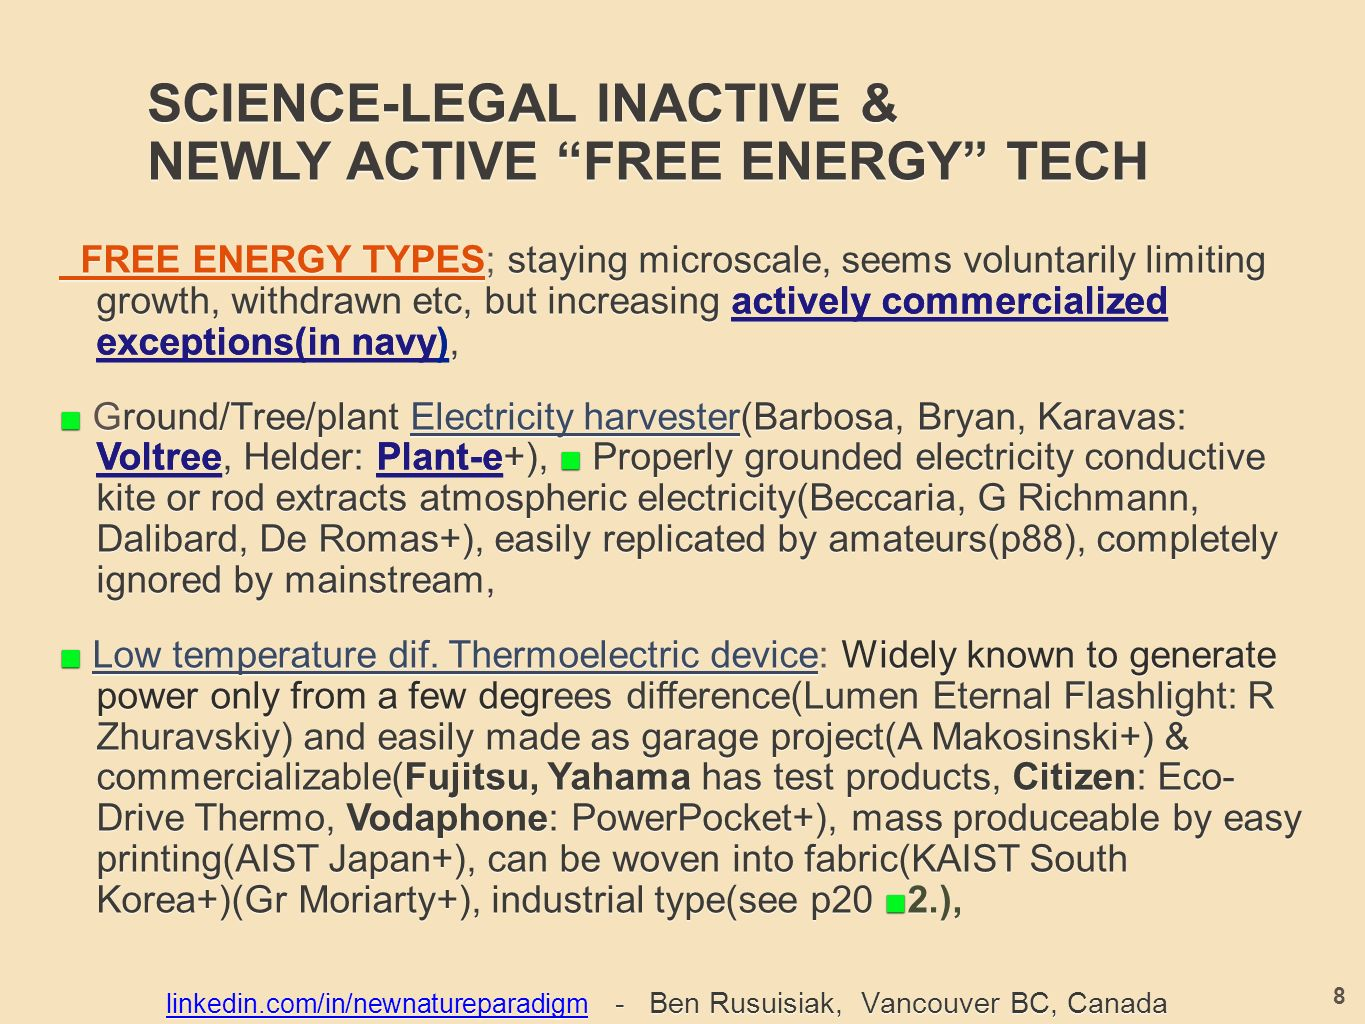 SCIENCE-LEGAL INACTIVE & NEWLY ACTIVE FREE ENERGY TECH FREE ENERGY TYPES; staying microscale, seems voluntarily limiting growth, withdrawn etc, but increasing actively commercialized exceptions(in navy), FREE ENERGY TYPES; staying microscale, seems voluntarily limiting growth, withdrawn etc, but increasing actively commercialized exceptions(in navy), ■ Ground/Tree/plant Electricity harvester(Barbosa, Bryan, Karavas: Voltree, Helder: Plant-e +), ■ Properly grounded electricity conductive kite or rod extracts atmospheric electricity(Beccaria, G Richmann, Dalibard, De Romas+), easily replicated by amateurs(p88), completely ignored by mainstream, ■ Ground/Tree/plant Electricity harvester(Barbosa, Bryan, Karavas: Voltree, Helder: Plant-e+), ■ Properly grounded electricity conductive kite or rod extracts atmospheric electricity(Beccaria, G Richmann, Dalibard, De Romas+), easily replicated by amateurs(p88), completely ignored by mainstream, ■ Low temperature dif.